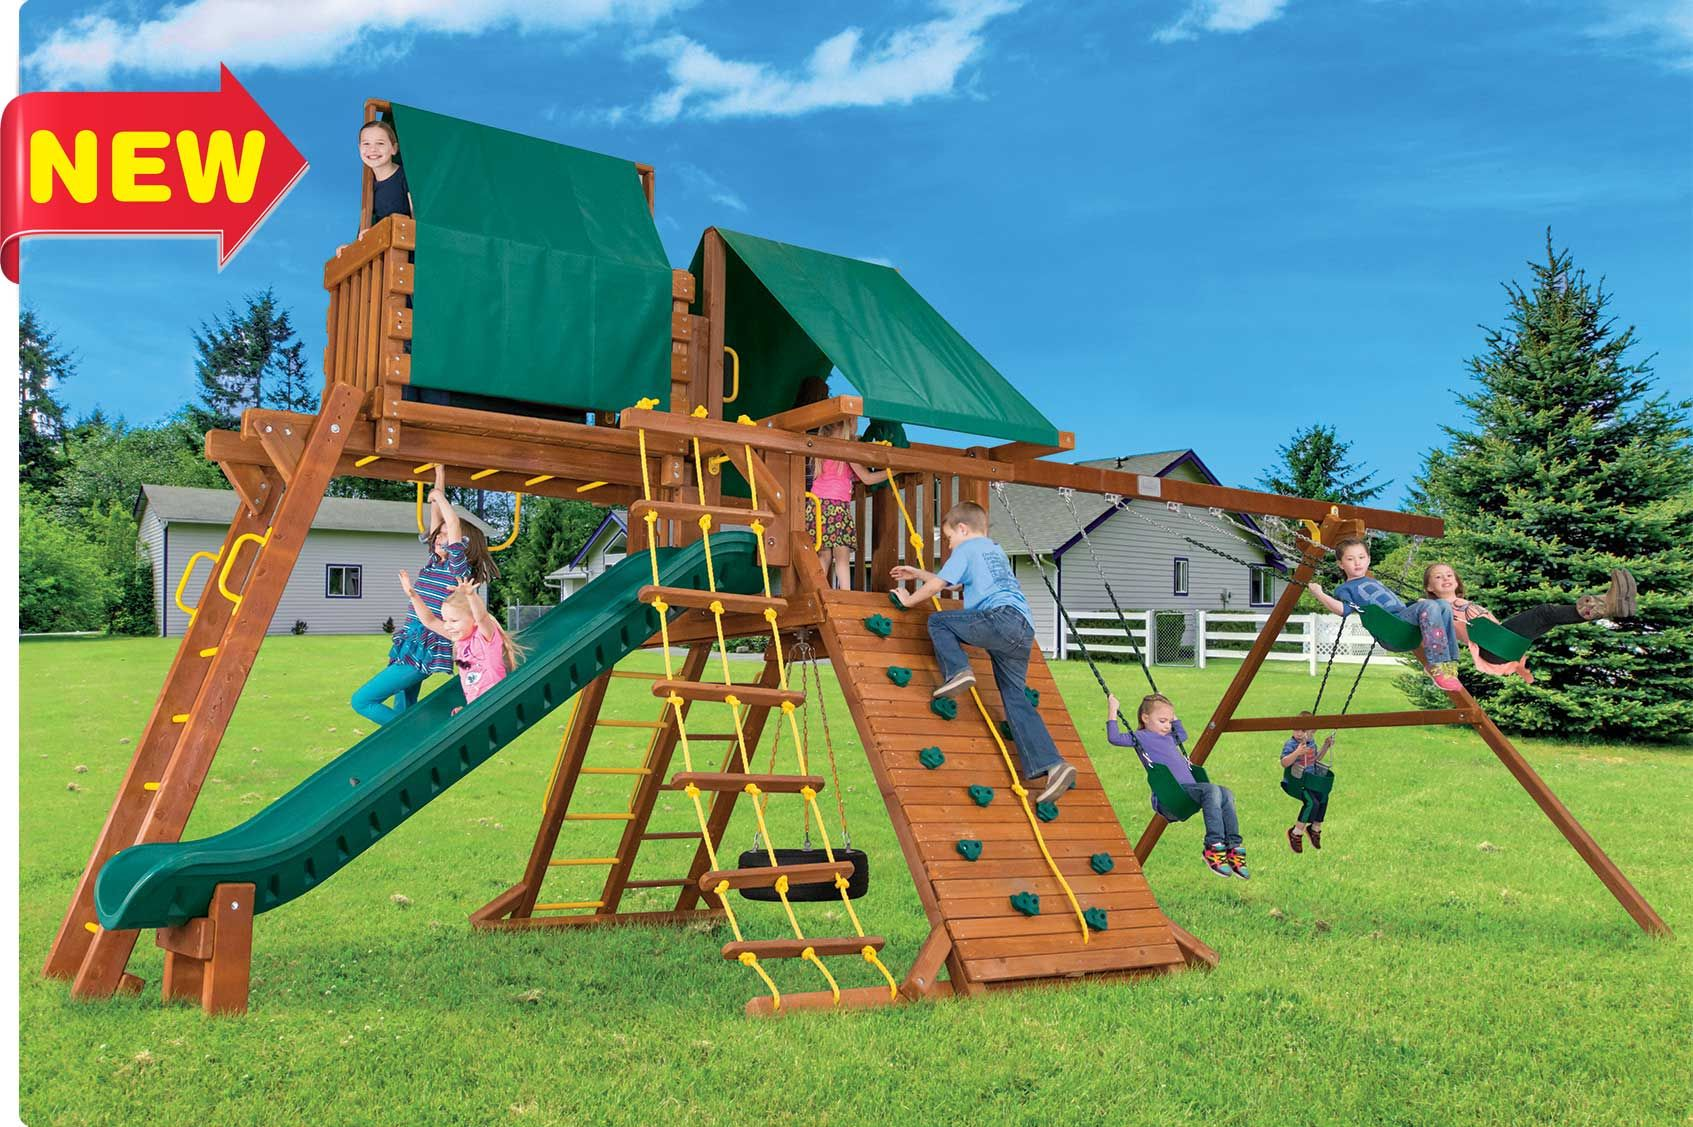 Swing Set Accessories Rainbow Play Systems Swing Set Accessories Swing Set